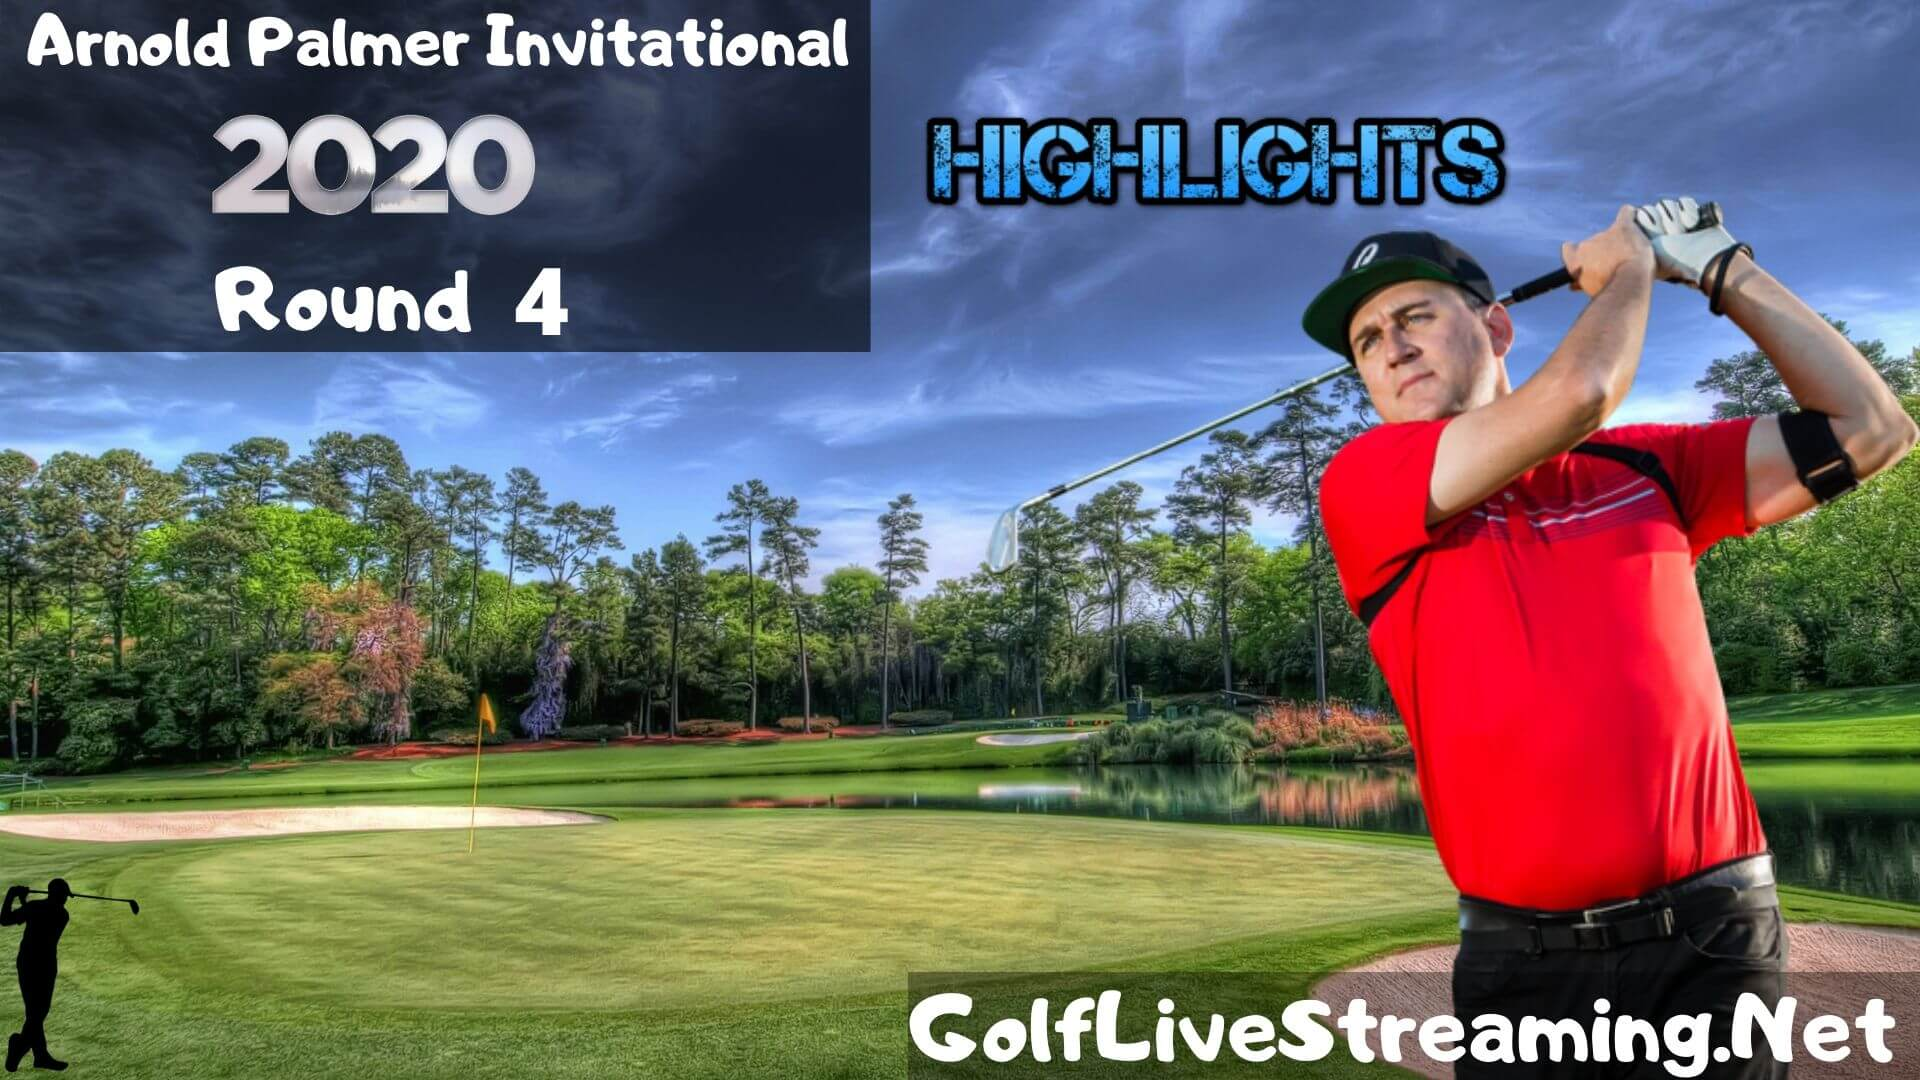 Arnold Palmer Invitational Rd 4 Highlights 2020